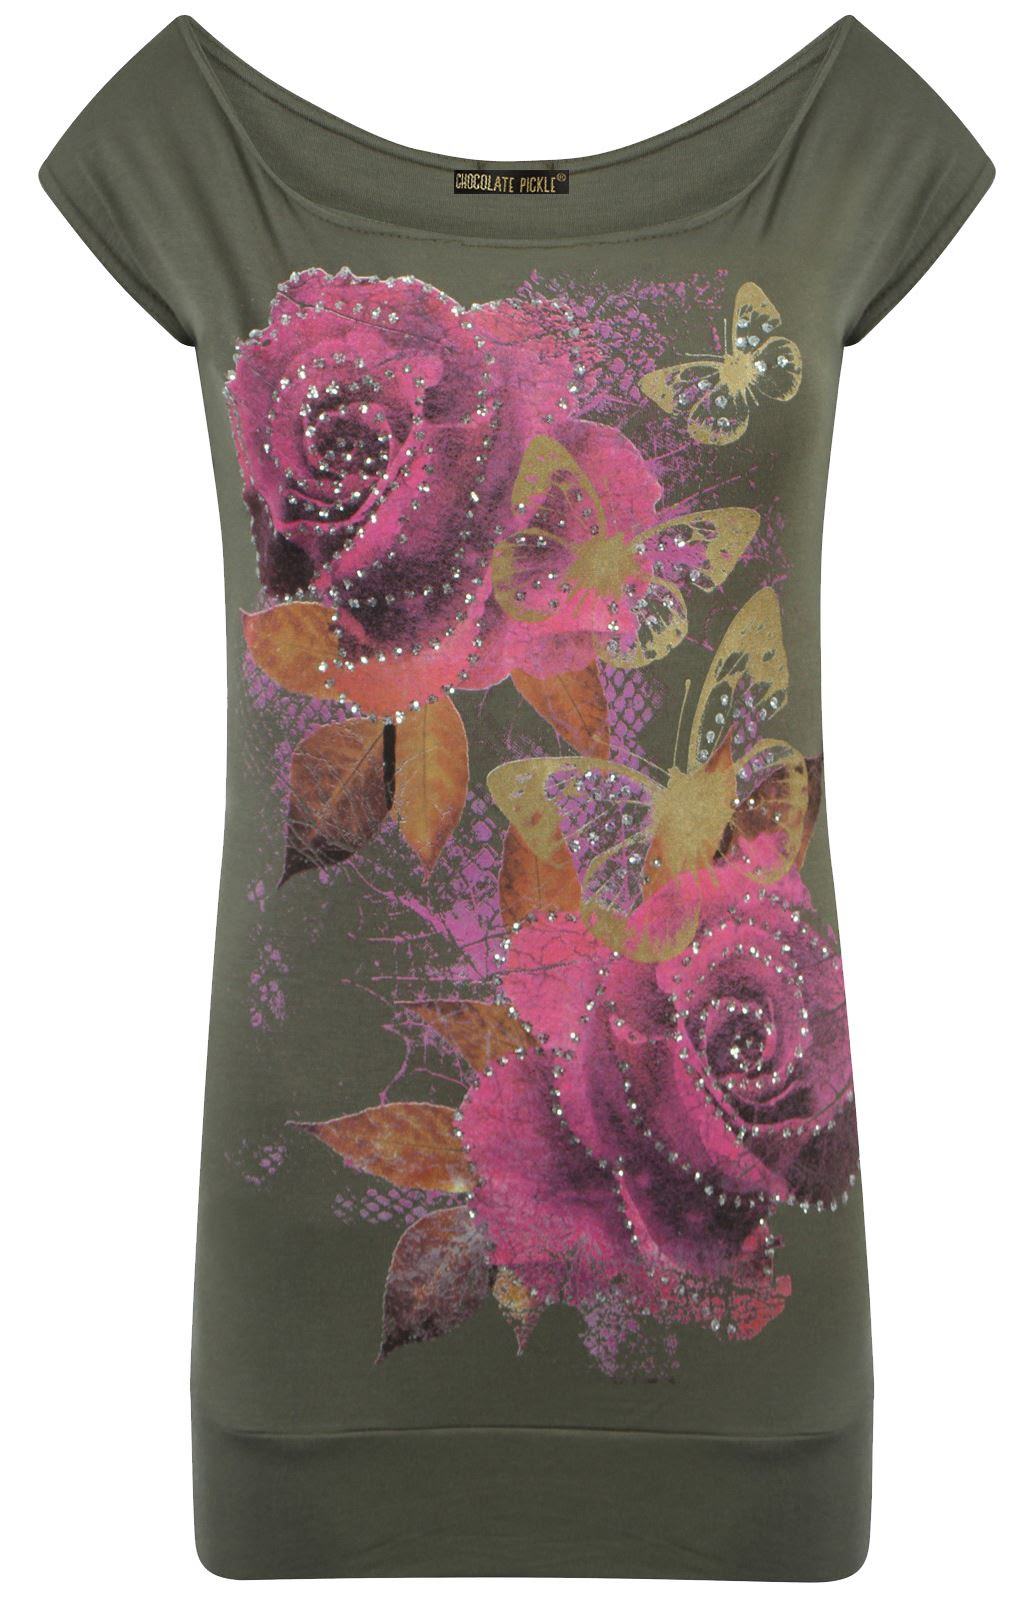 Leggings online Round Neck Single Button Back Hole Floral Printed Sleeveless Casual Dresses venus